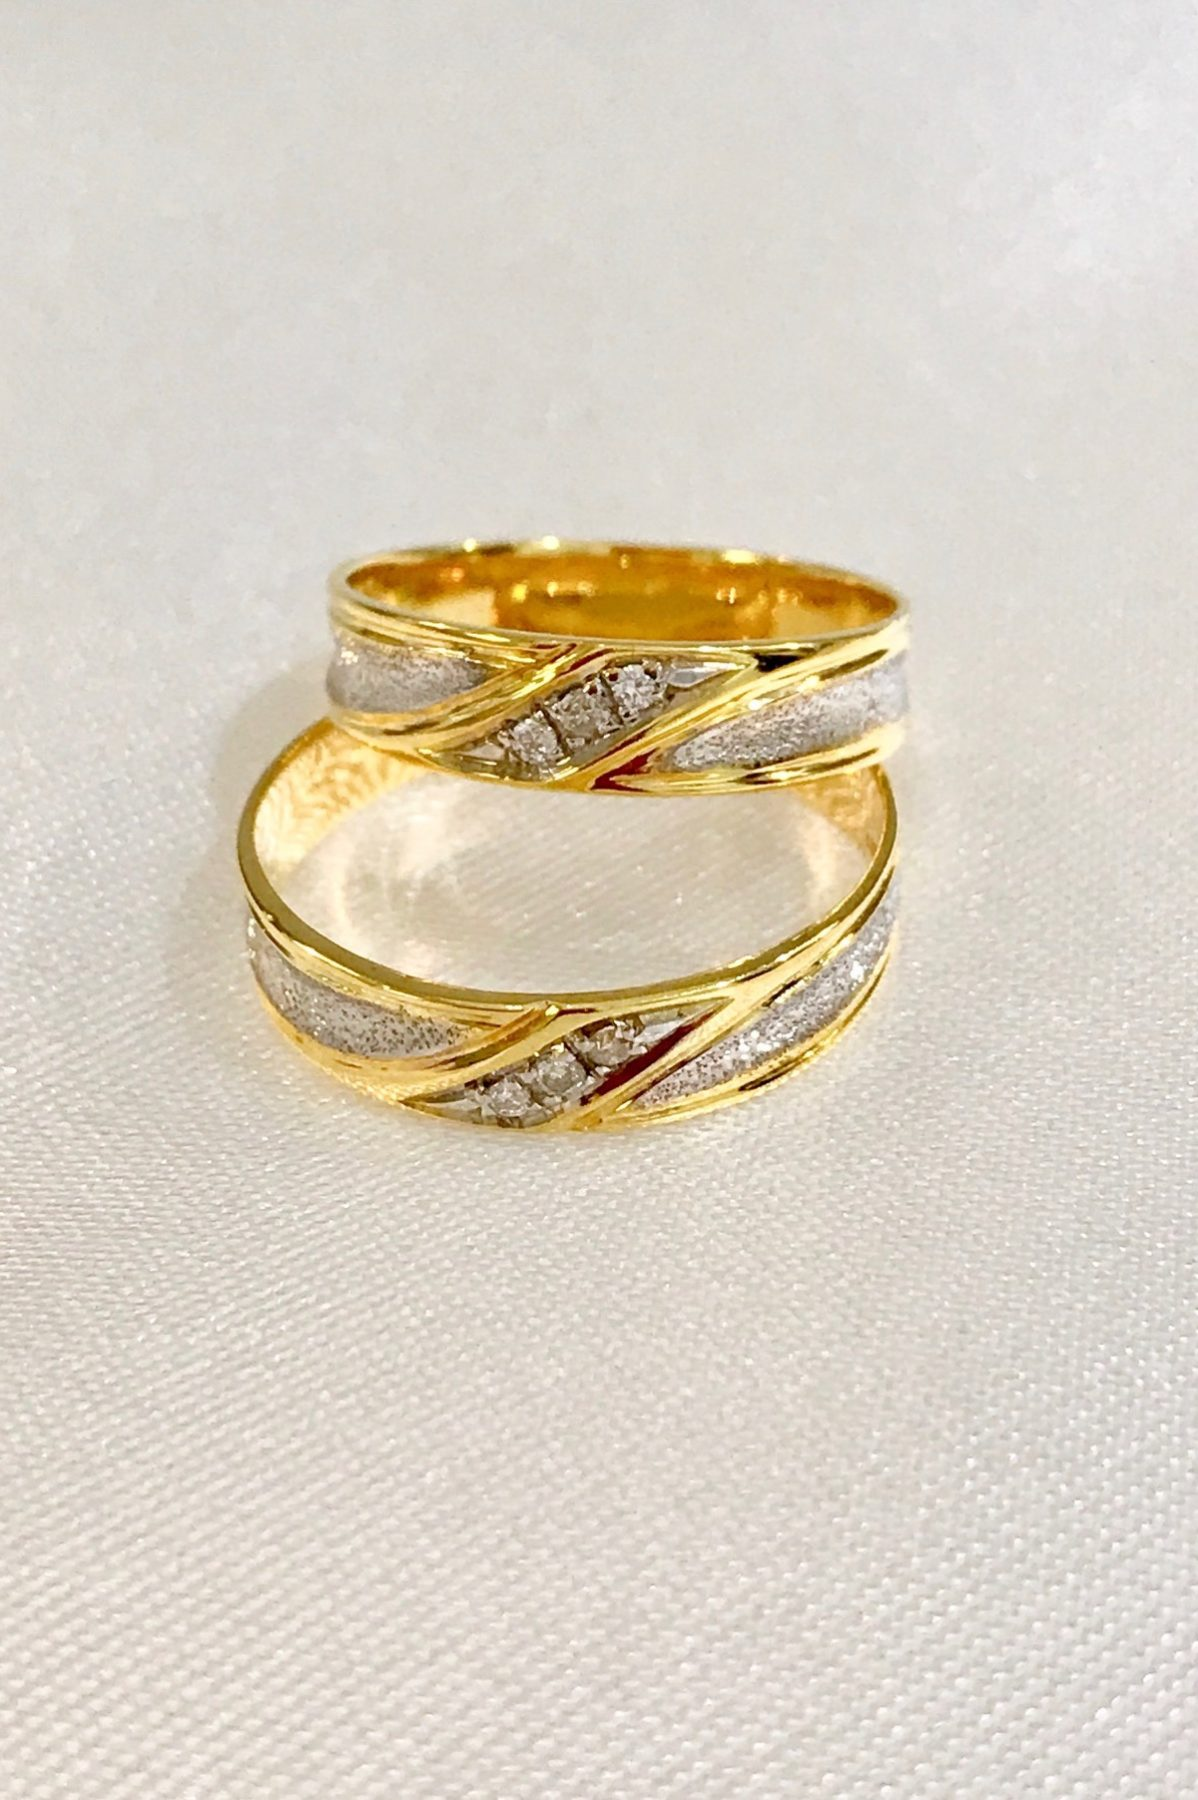 14K GOLD WEDDING RING WITH DIAMONDS